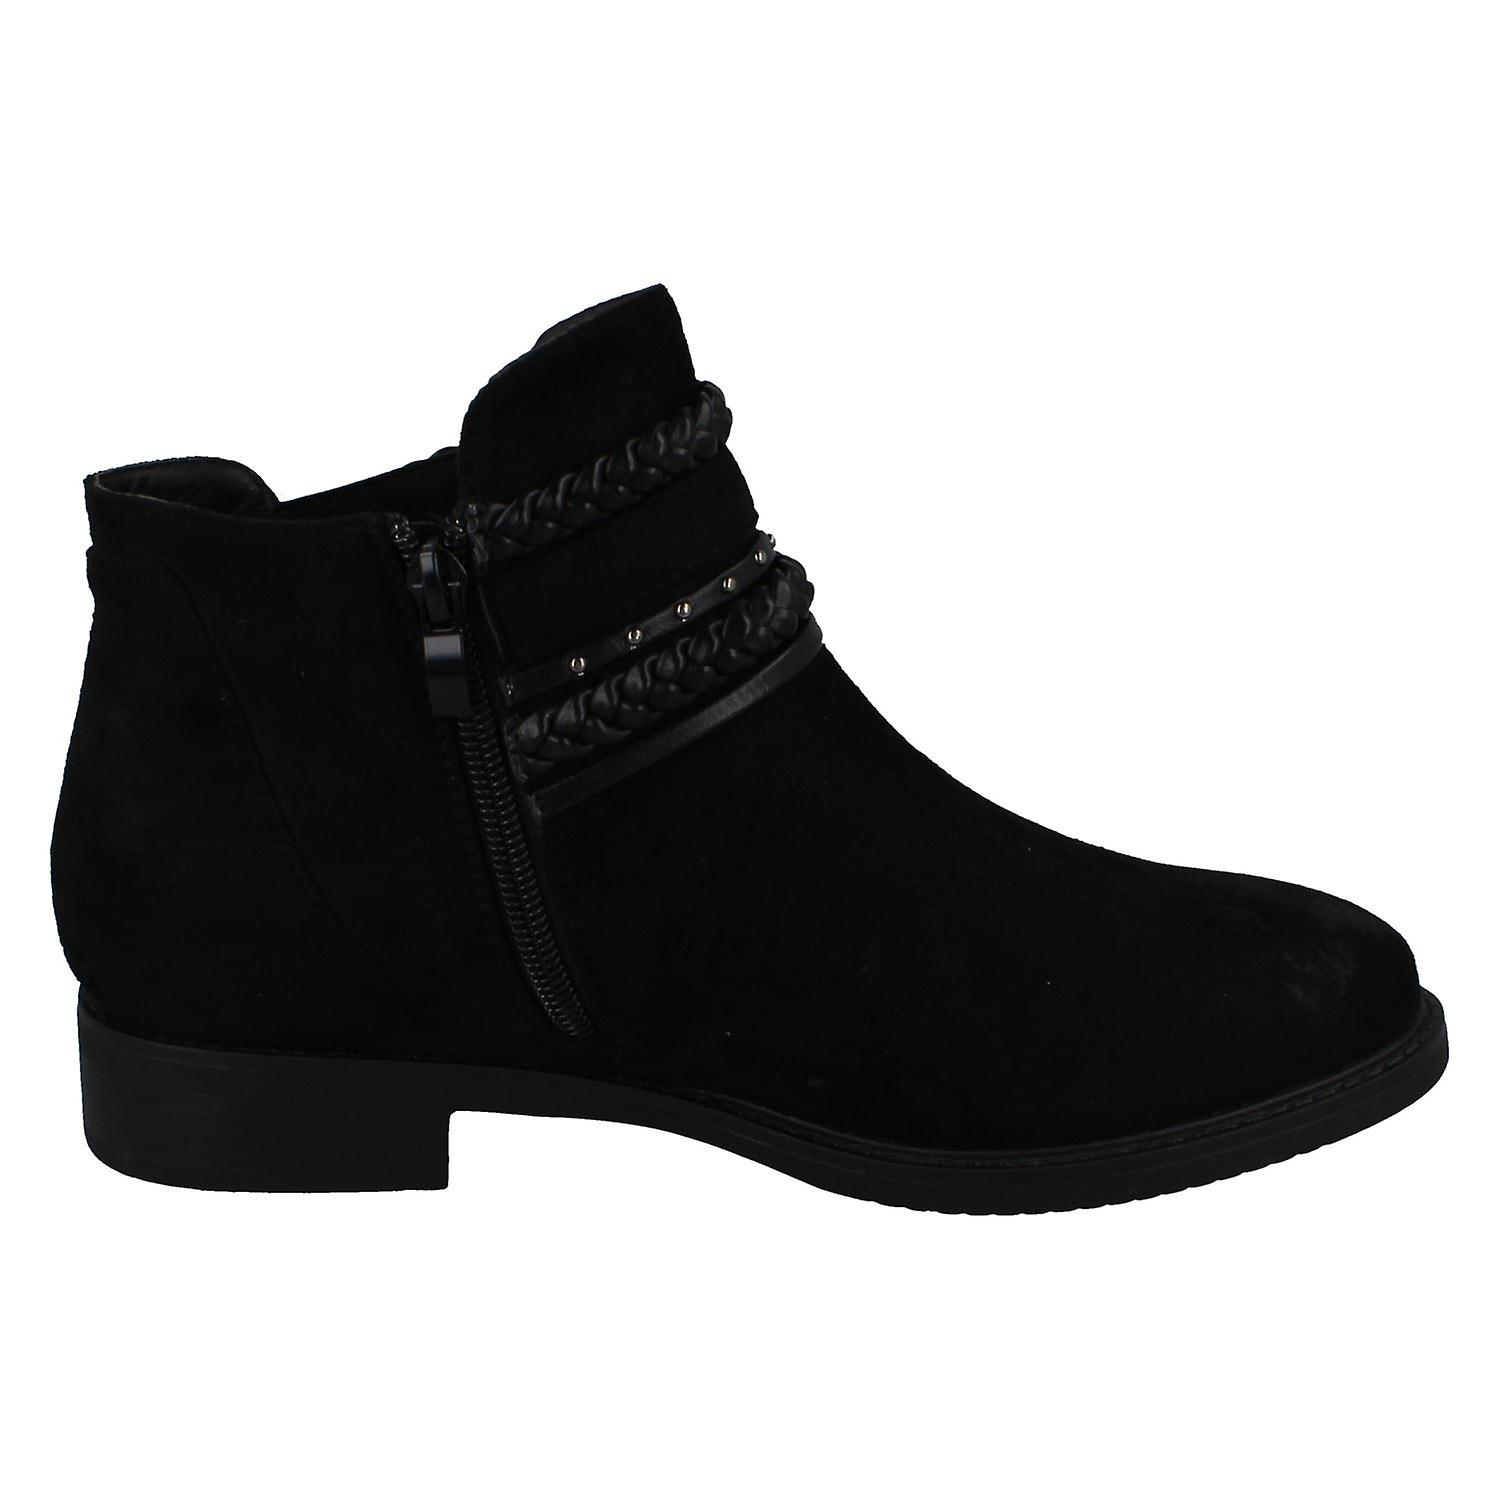 Ladies Spot On Low Heel Ankle Boots F51032